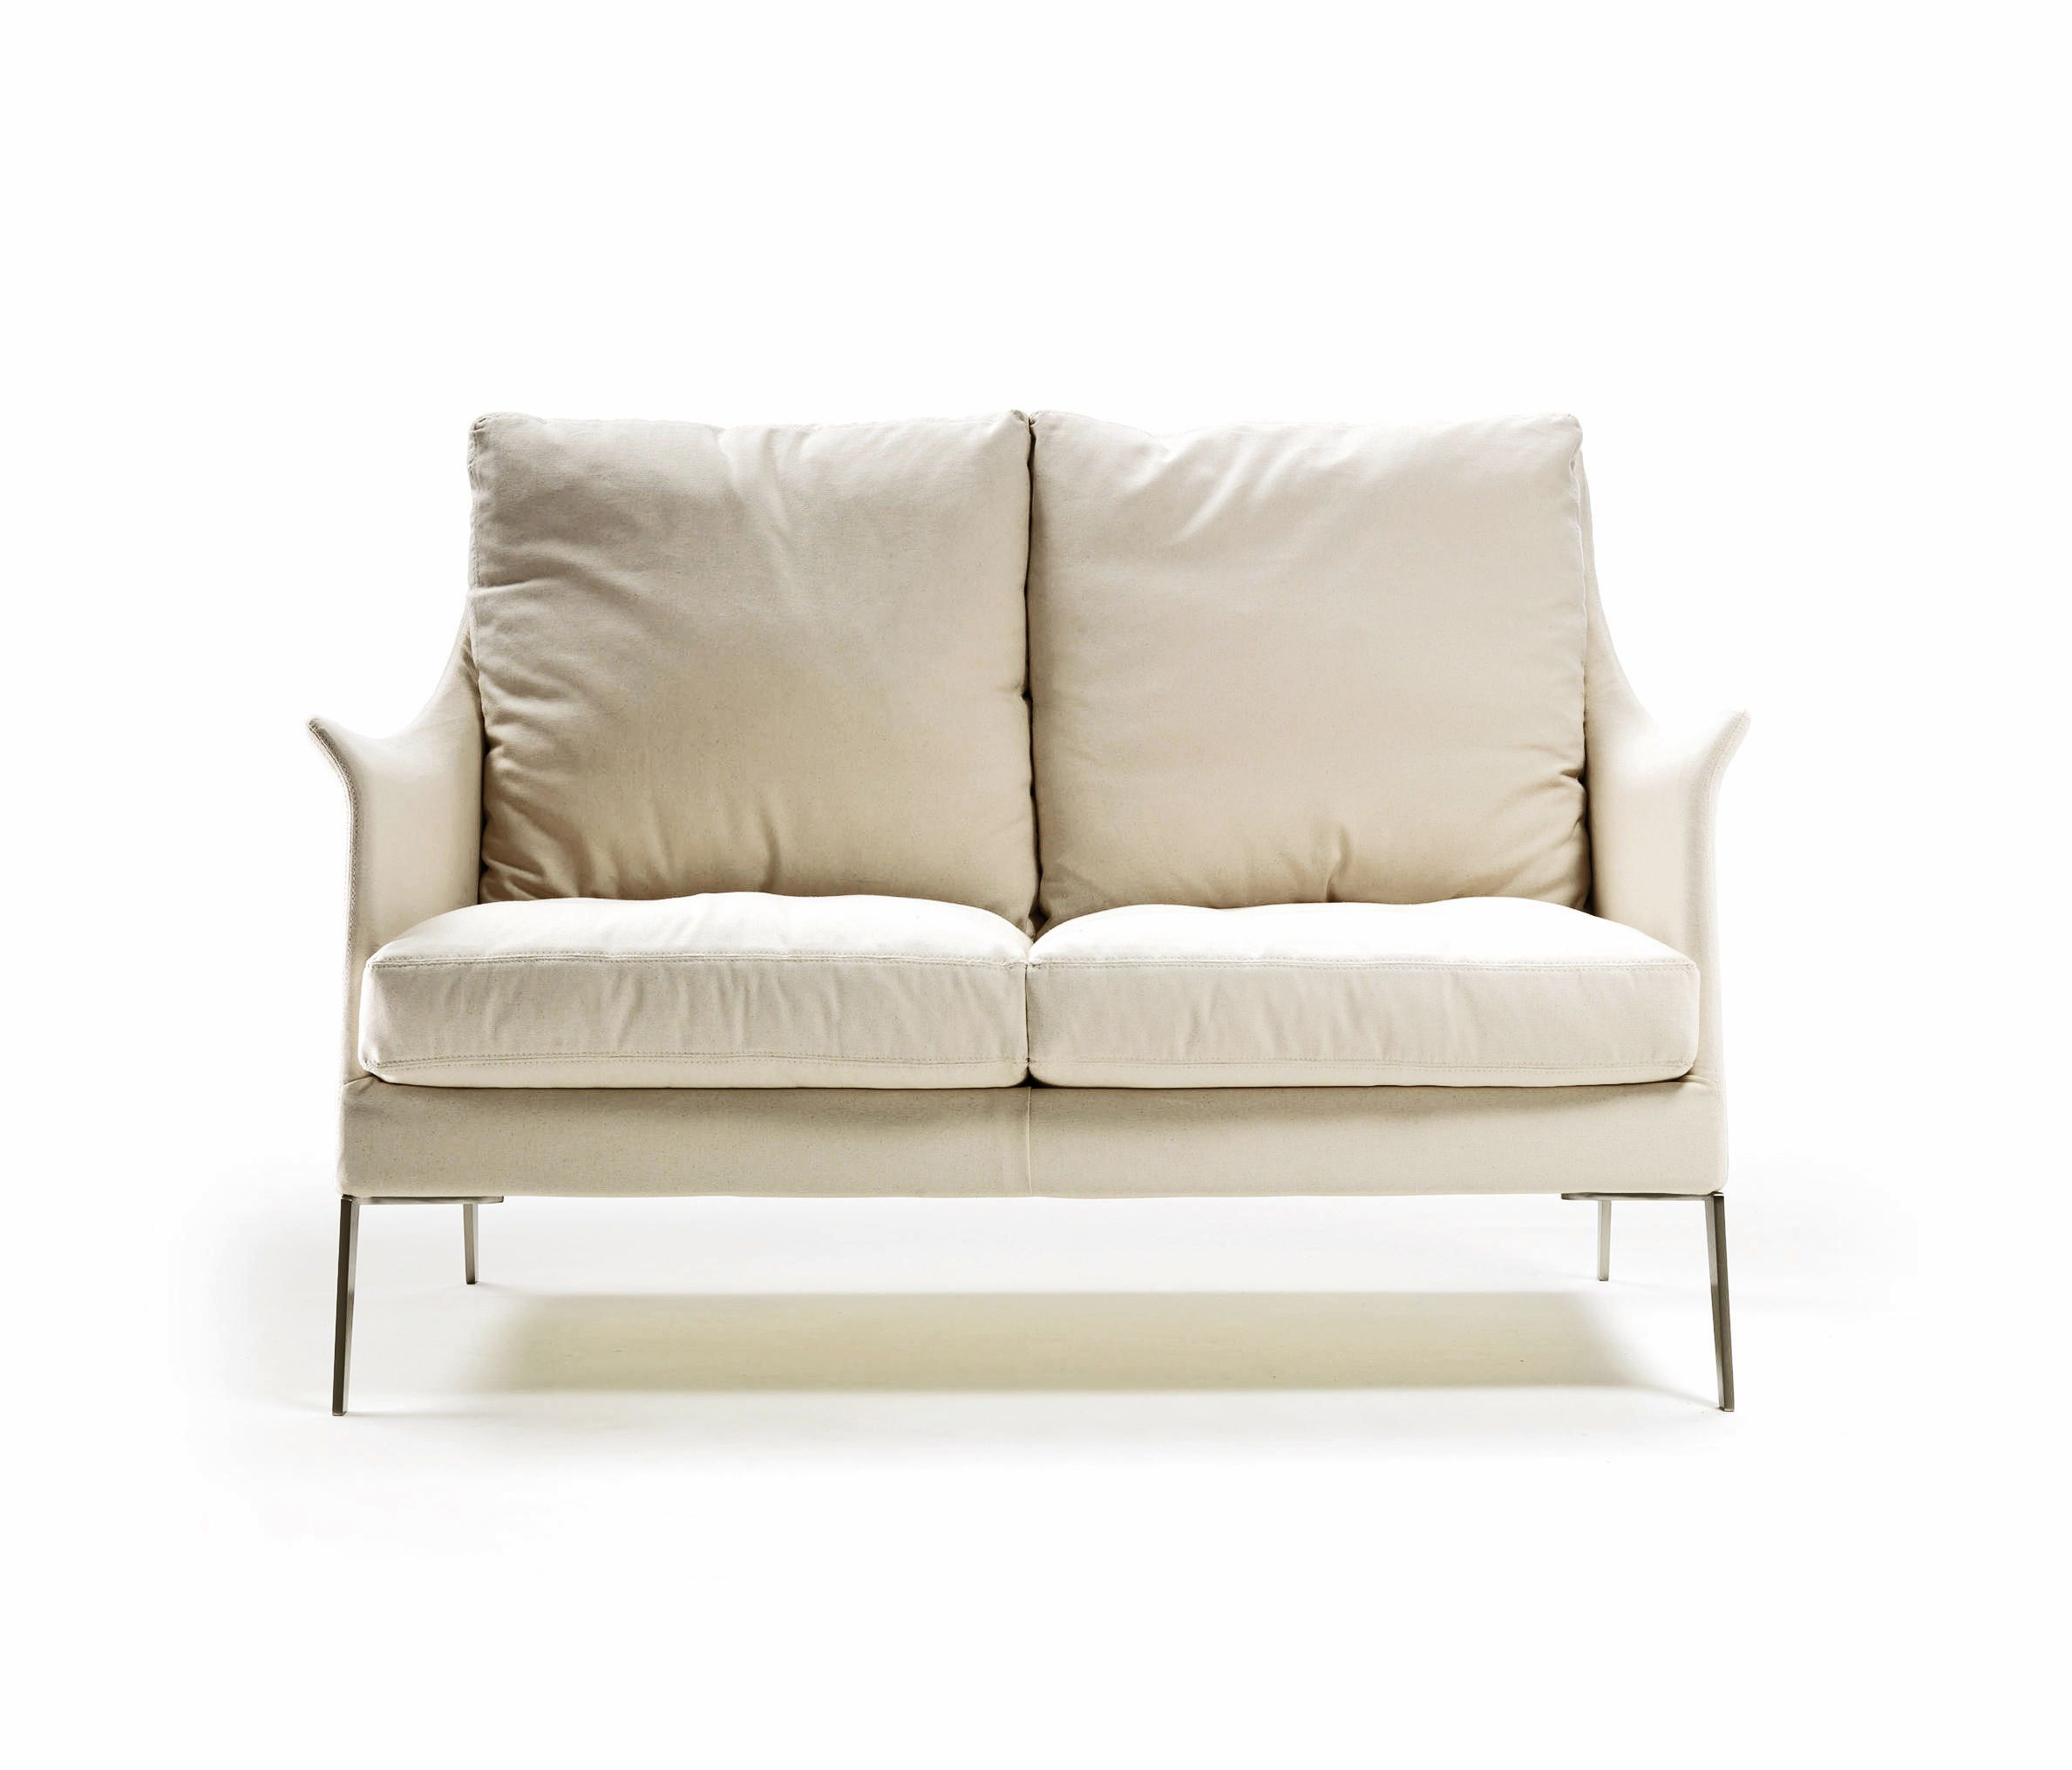 Flexform Nonnamaria Fauteuil.Flexform S Boss Loveseat Flexform Loveseat Leather White Sofa